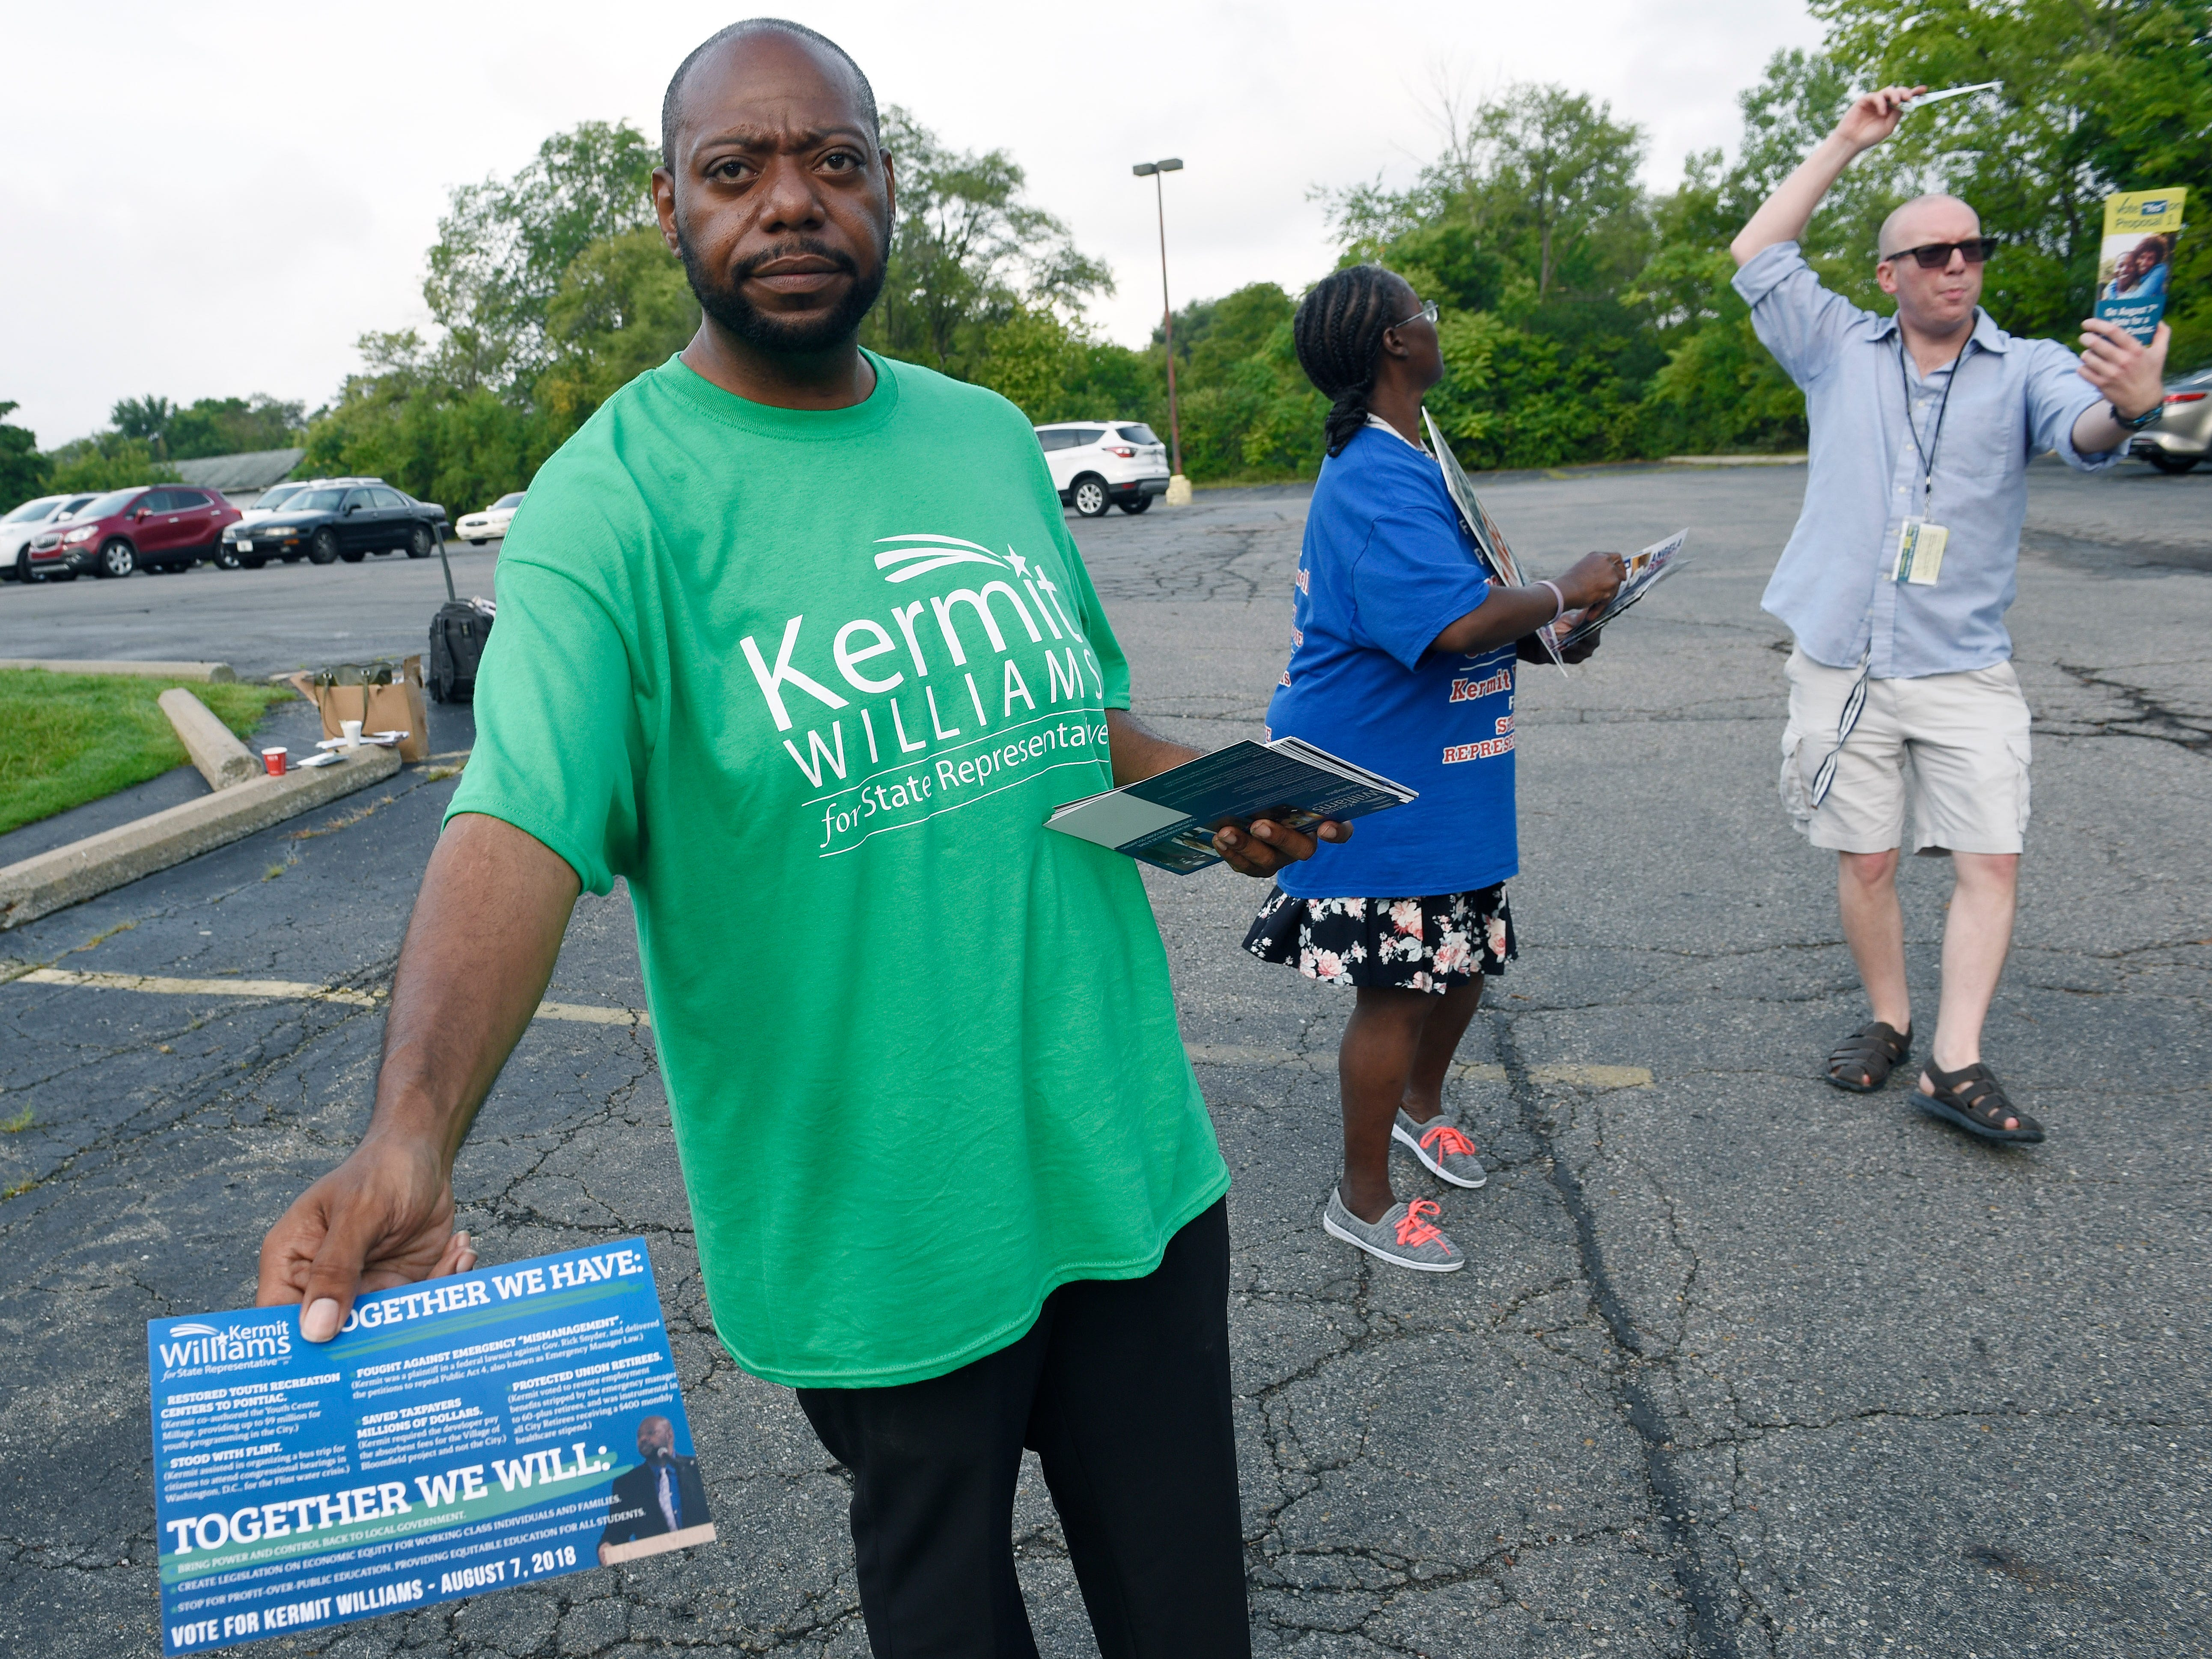 Kermit Williams ,who is running for state representative, hands out literature about his campaign Tuesday morning at New Bethel Missionary Baptist church.*** Voters and campaign workers at New Bethel Missionary Baptist church. August 7, 2018, Pontiac, MI. (ClarenceTabb Jr./Detroit News)